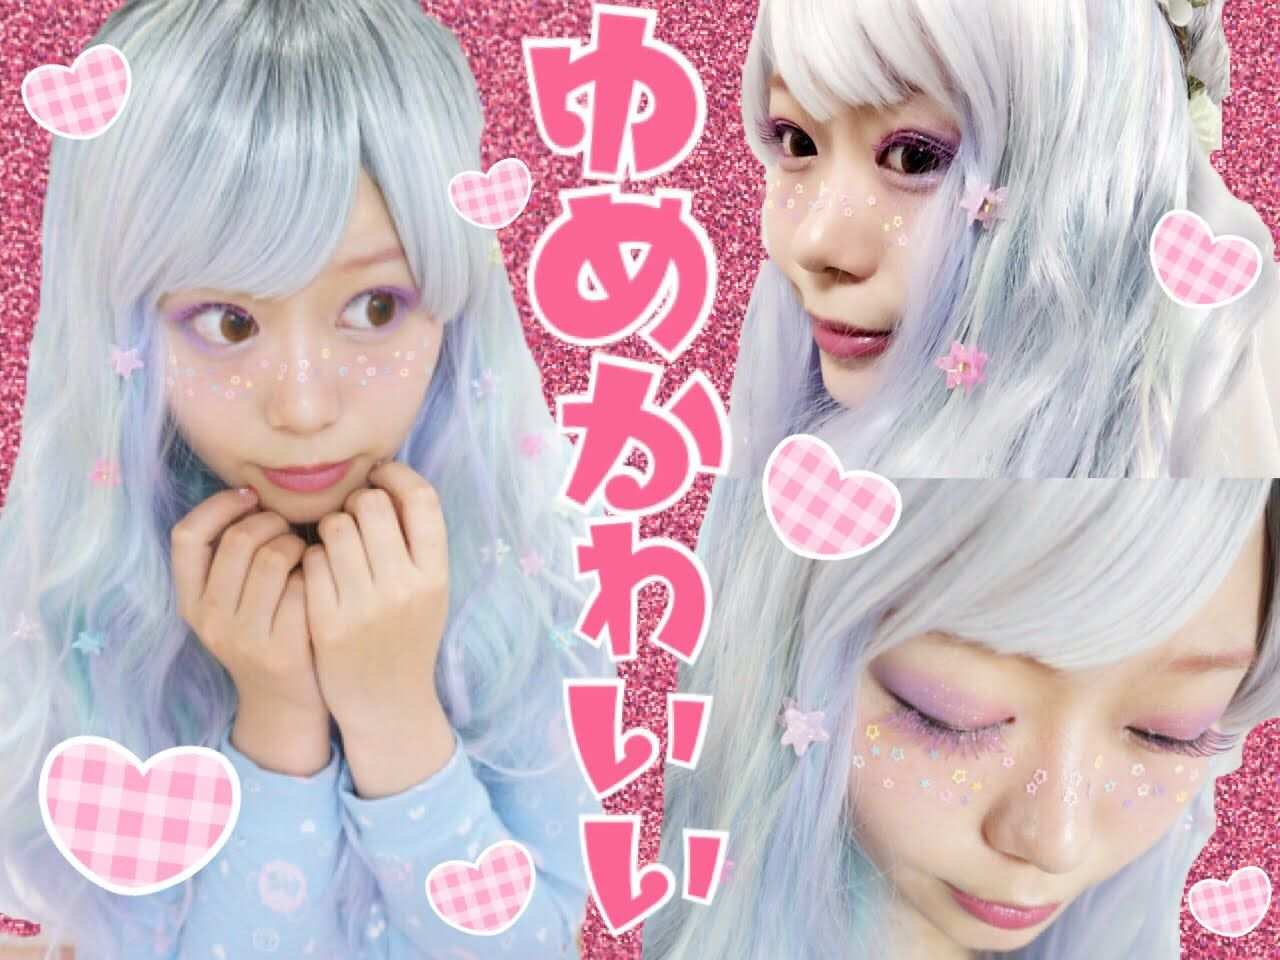 ゆめかわいいメイク ♡Japanese yume kawaii make♡ by mompiyo